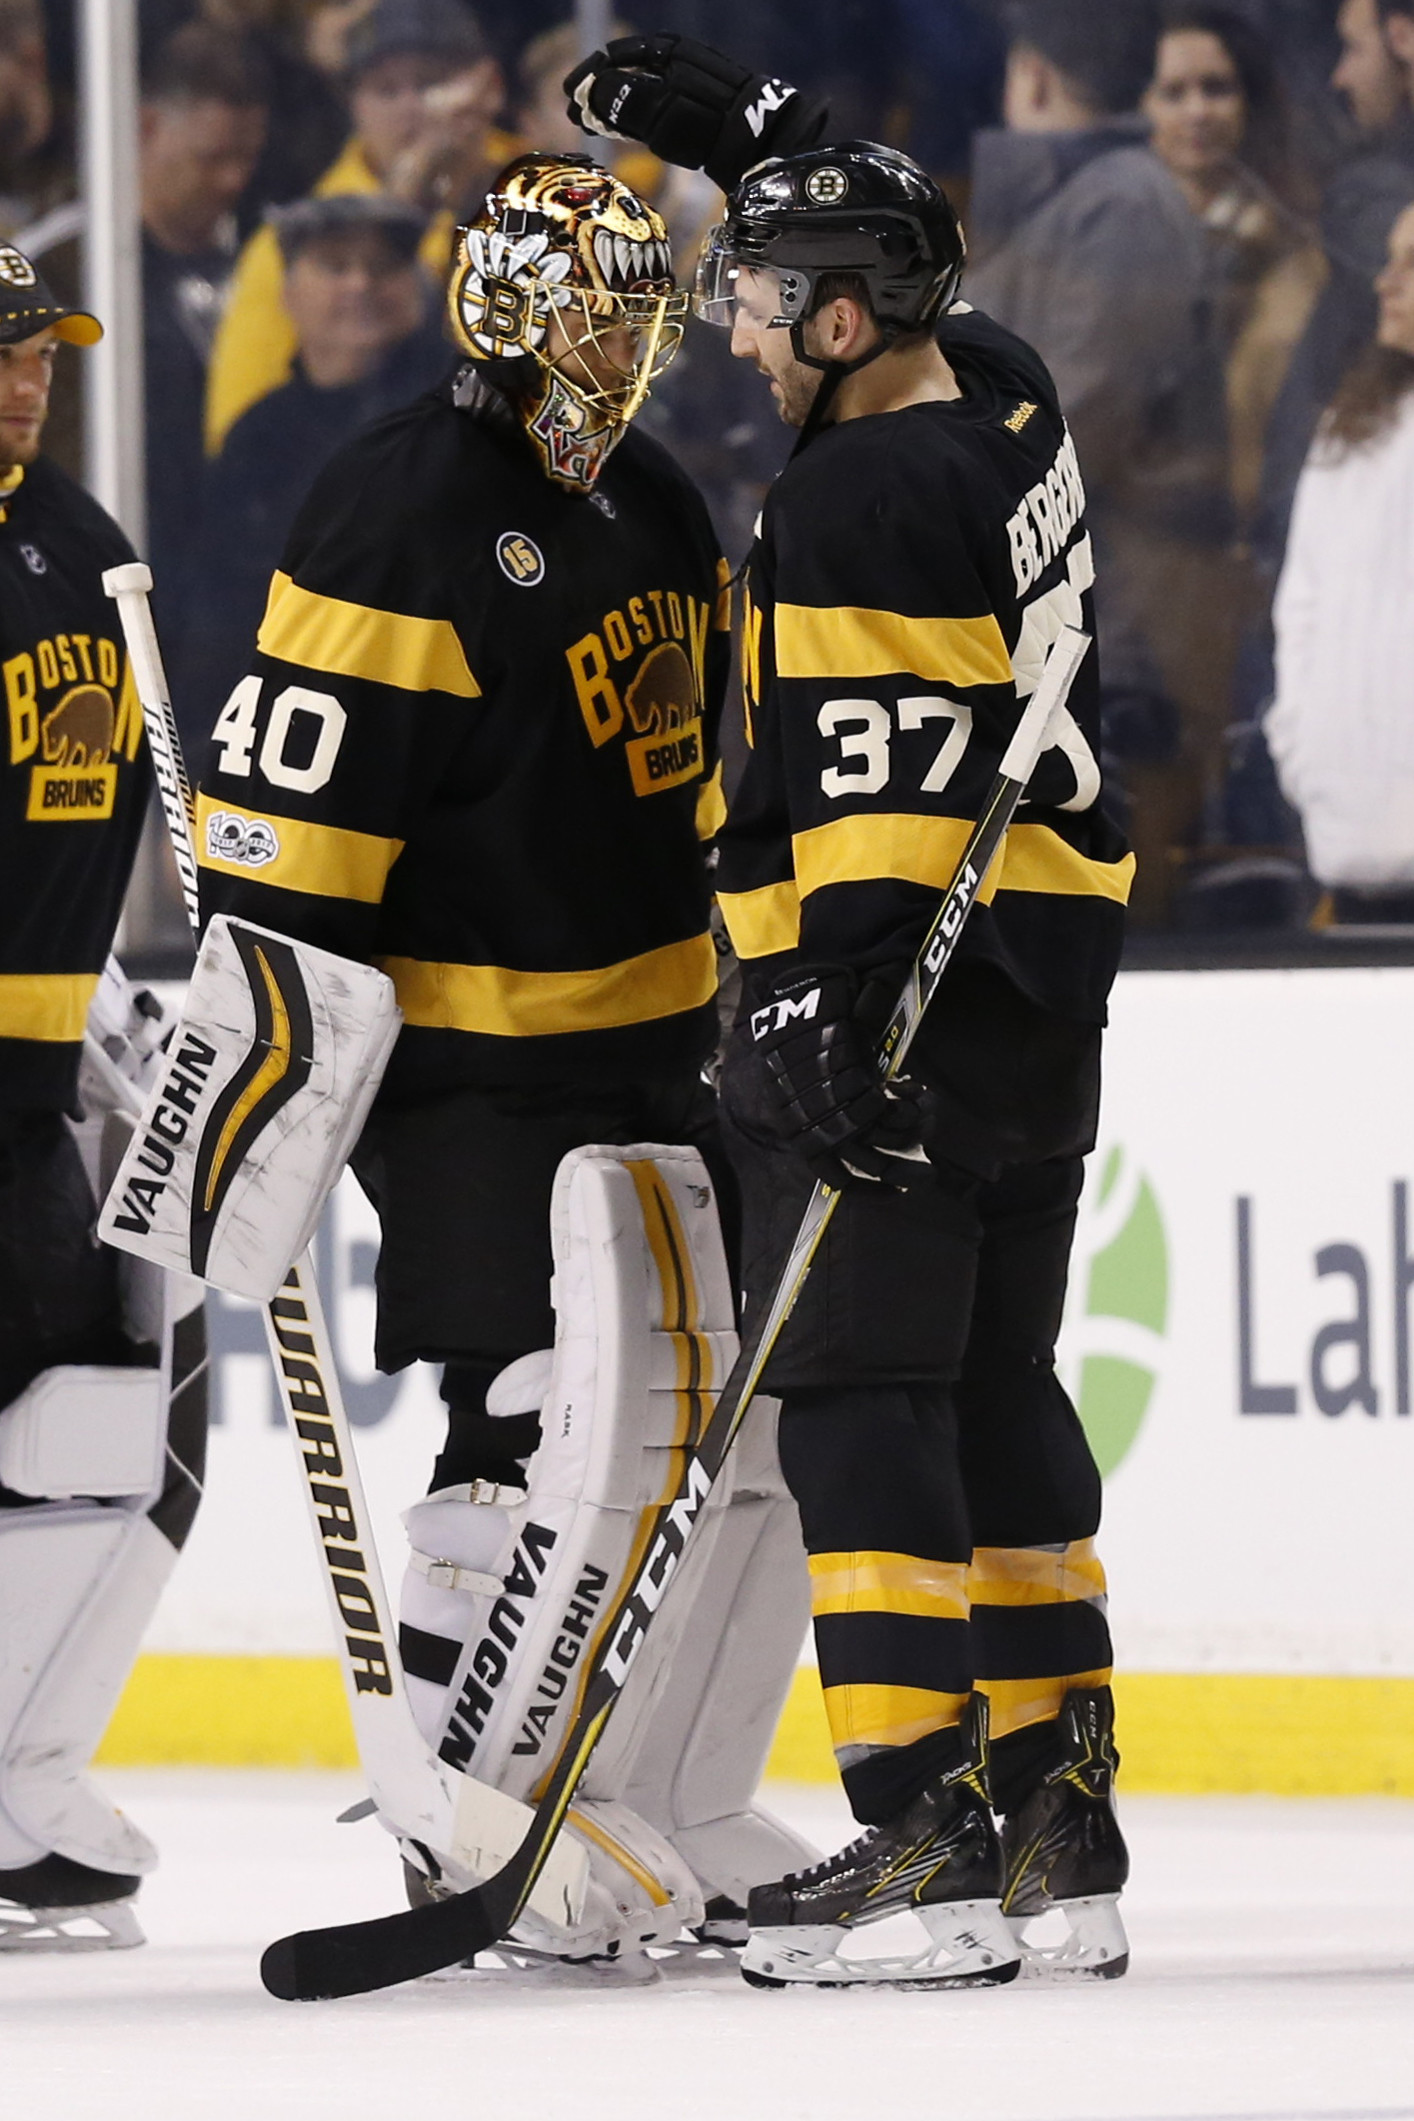 Res: 1414x2121, Boston Bruins Backgrounds on Walls Cover